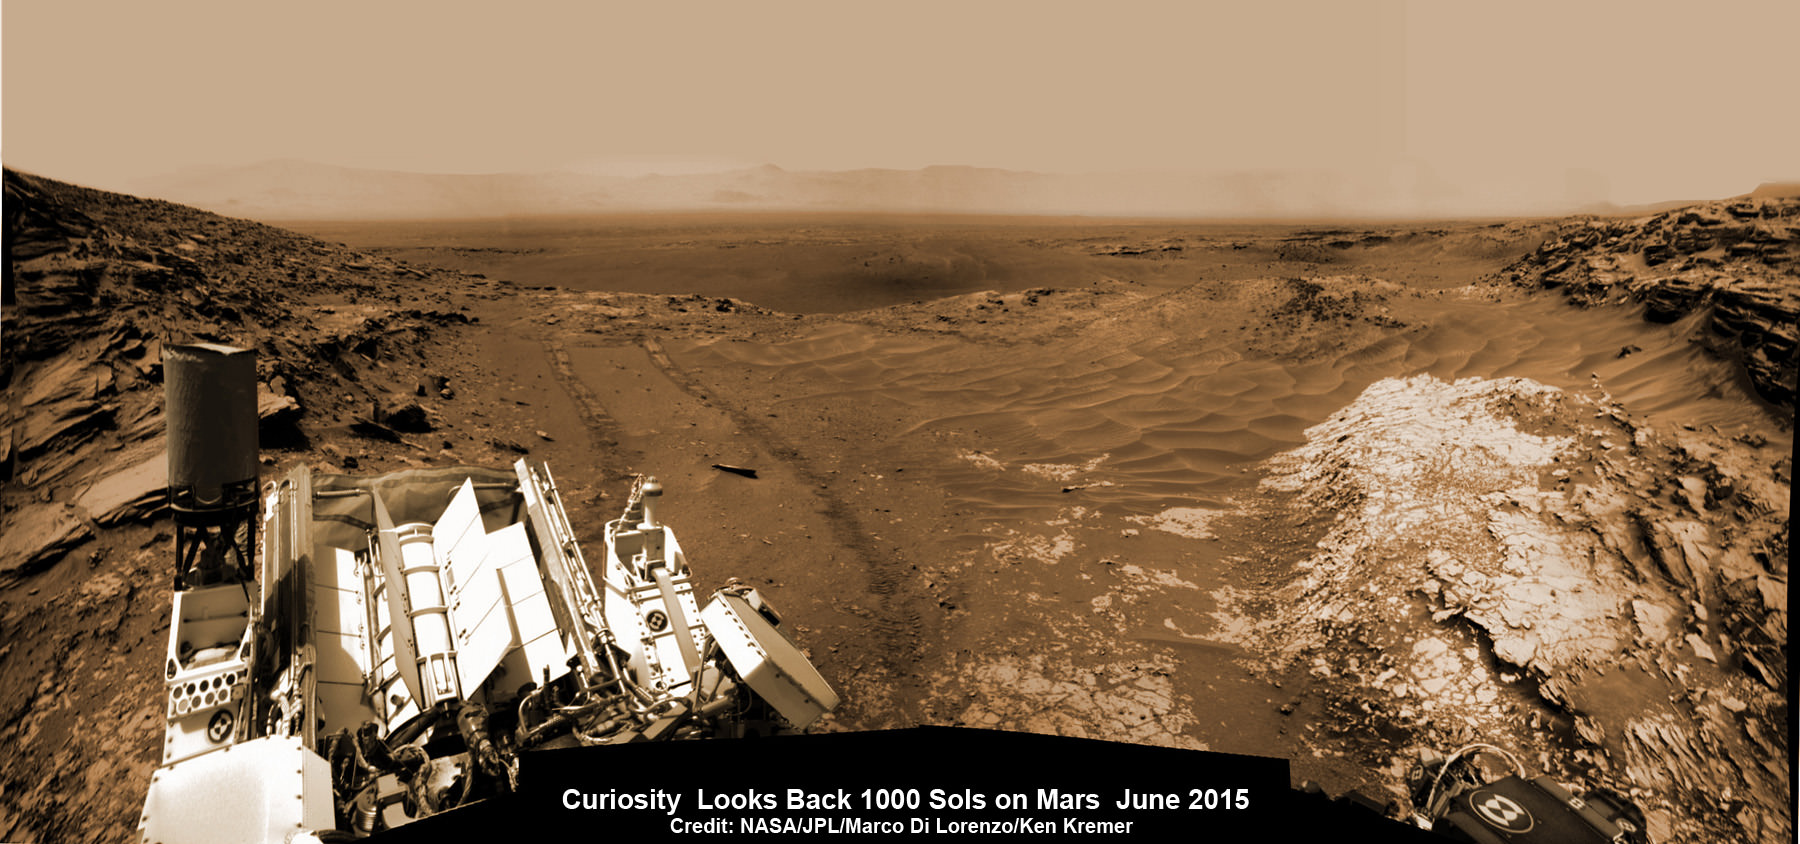 NASA's Martian Curiosity rover looks backs to 1000 Sols of science and exploration on the surface of the Red Planet.  Robot wheel tracks lead back through valley dunes.  Gale Crater rim seen in the distant hazy background.  Sol 997 (May 28, 2015) navcam camera raw images stitched and colorized. Credit:  NASA/JPL-Caltech/ Marco Di Lorenzo/Ken Kremer/kenkremer.com